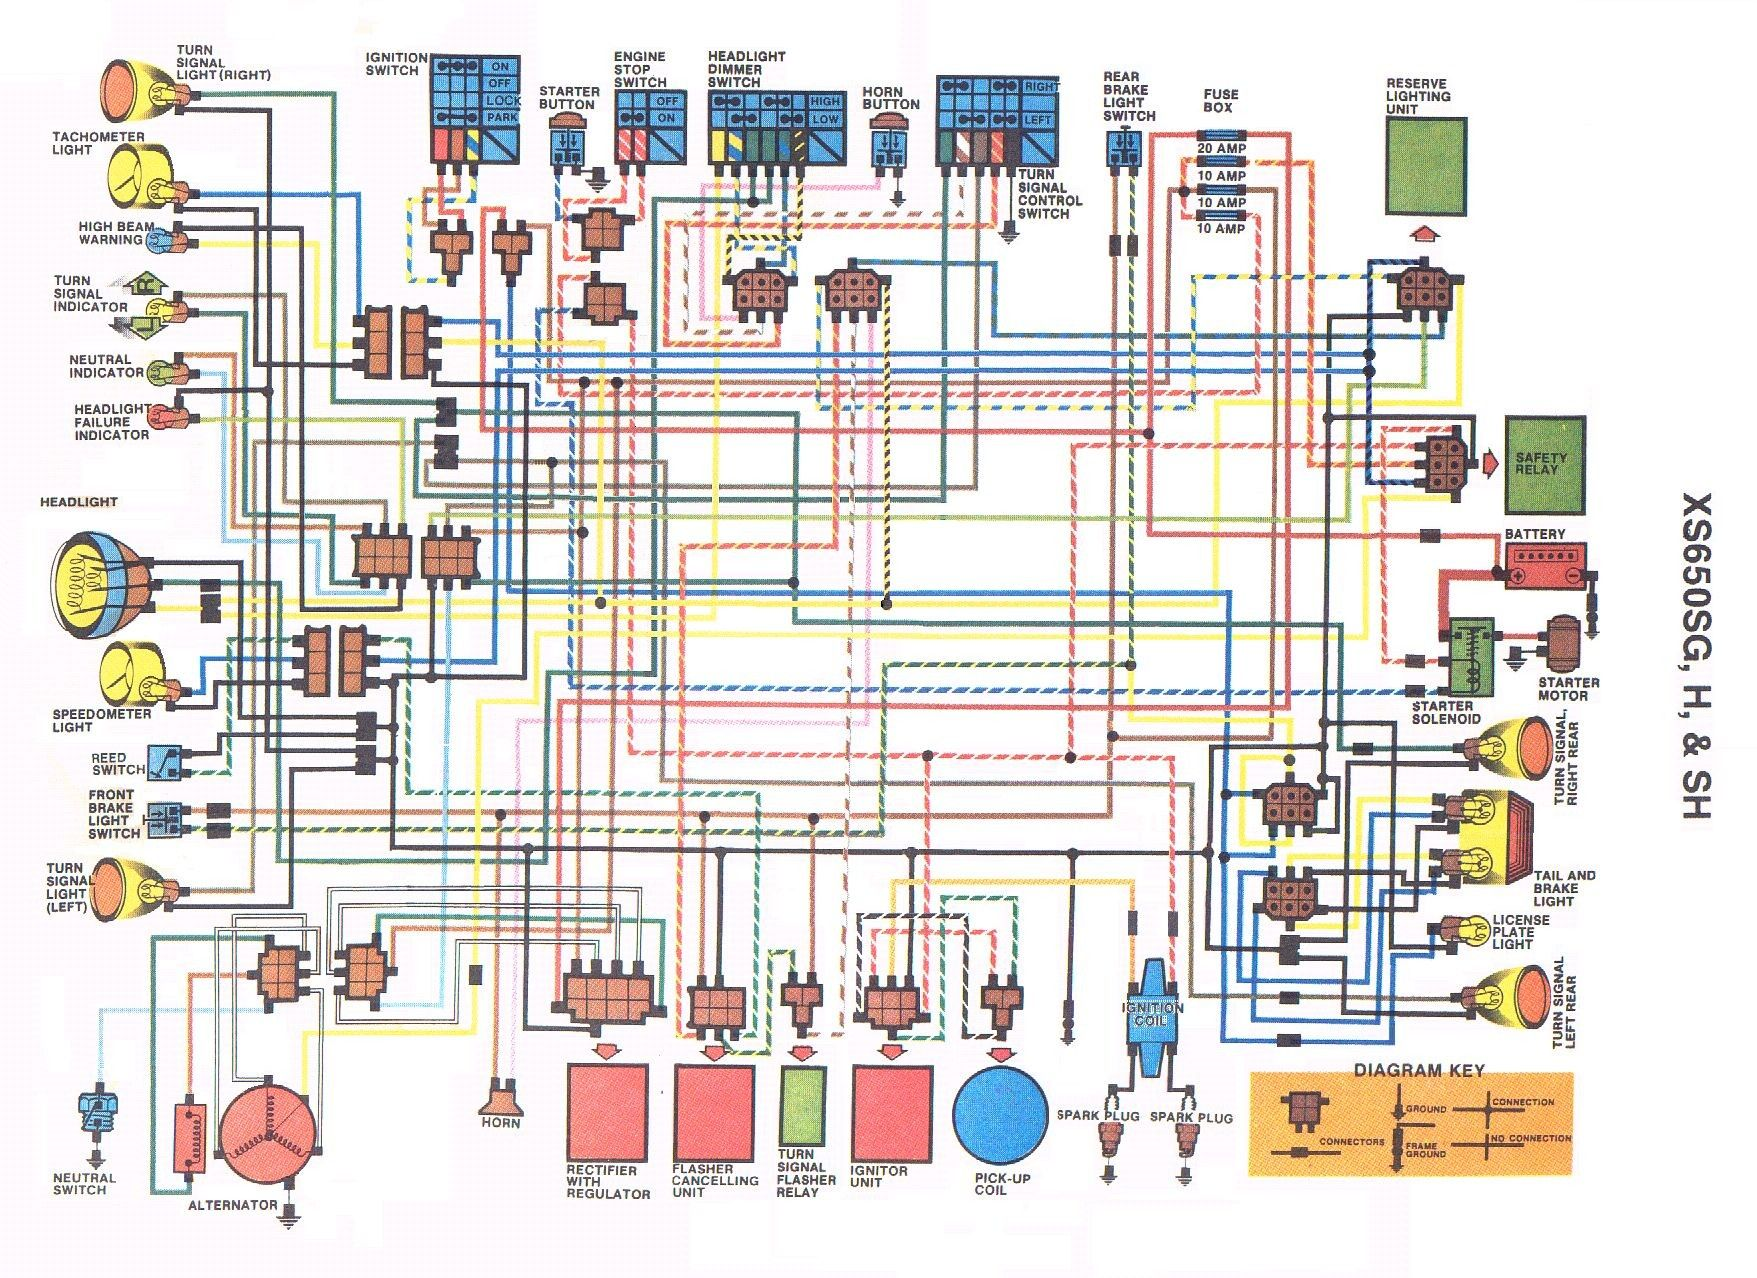 Lovely Wiring Diagram Xs650  Diagrams  Digramssample